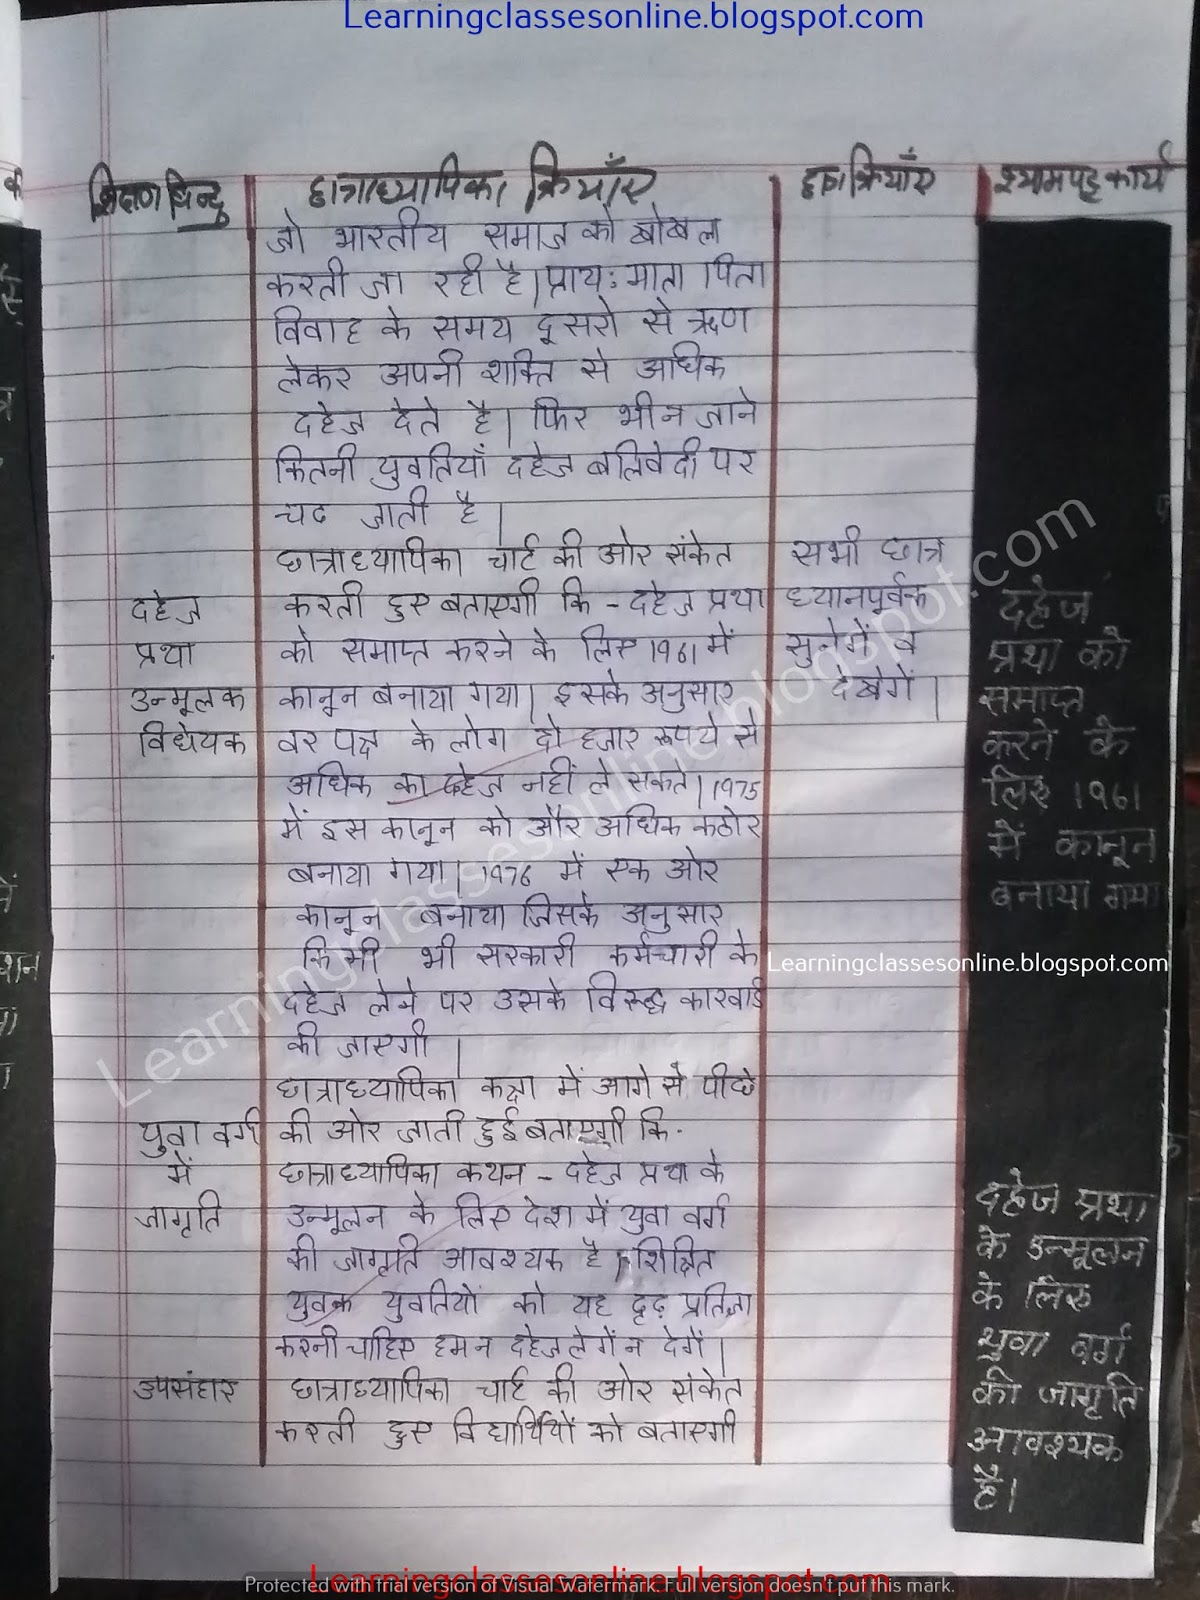 lesson plan format in hindi for b.ed , deled, btc